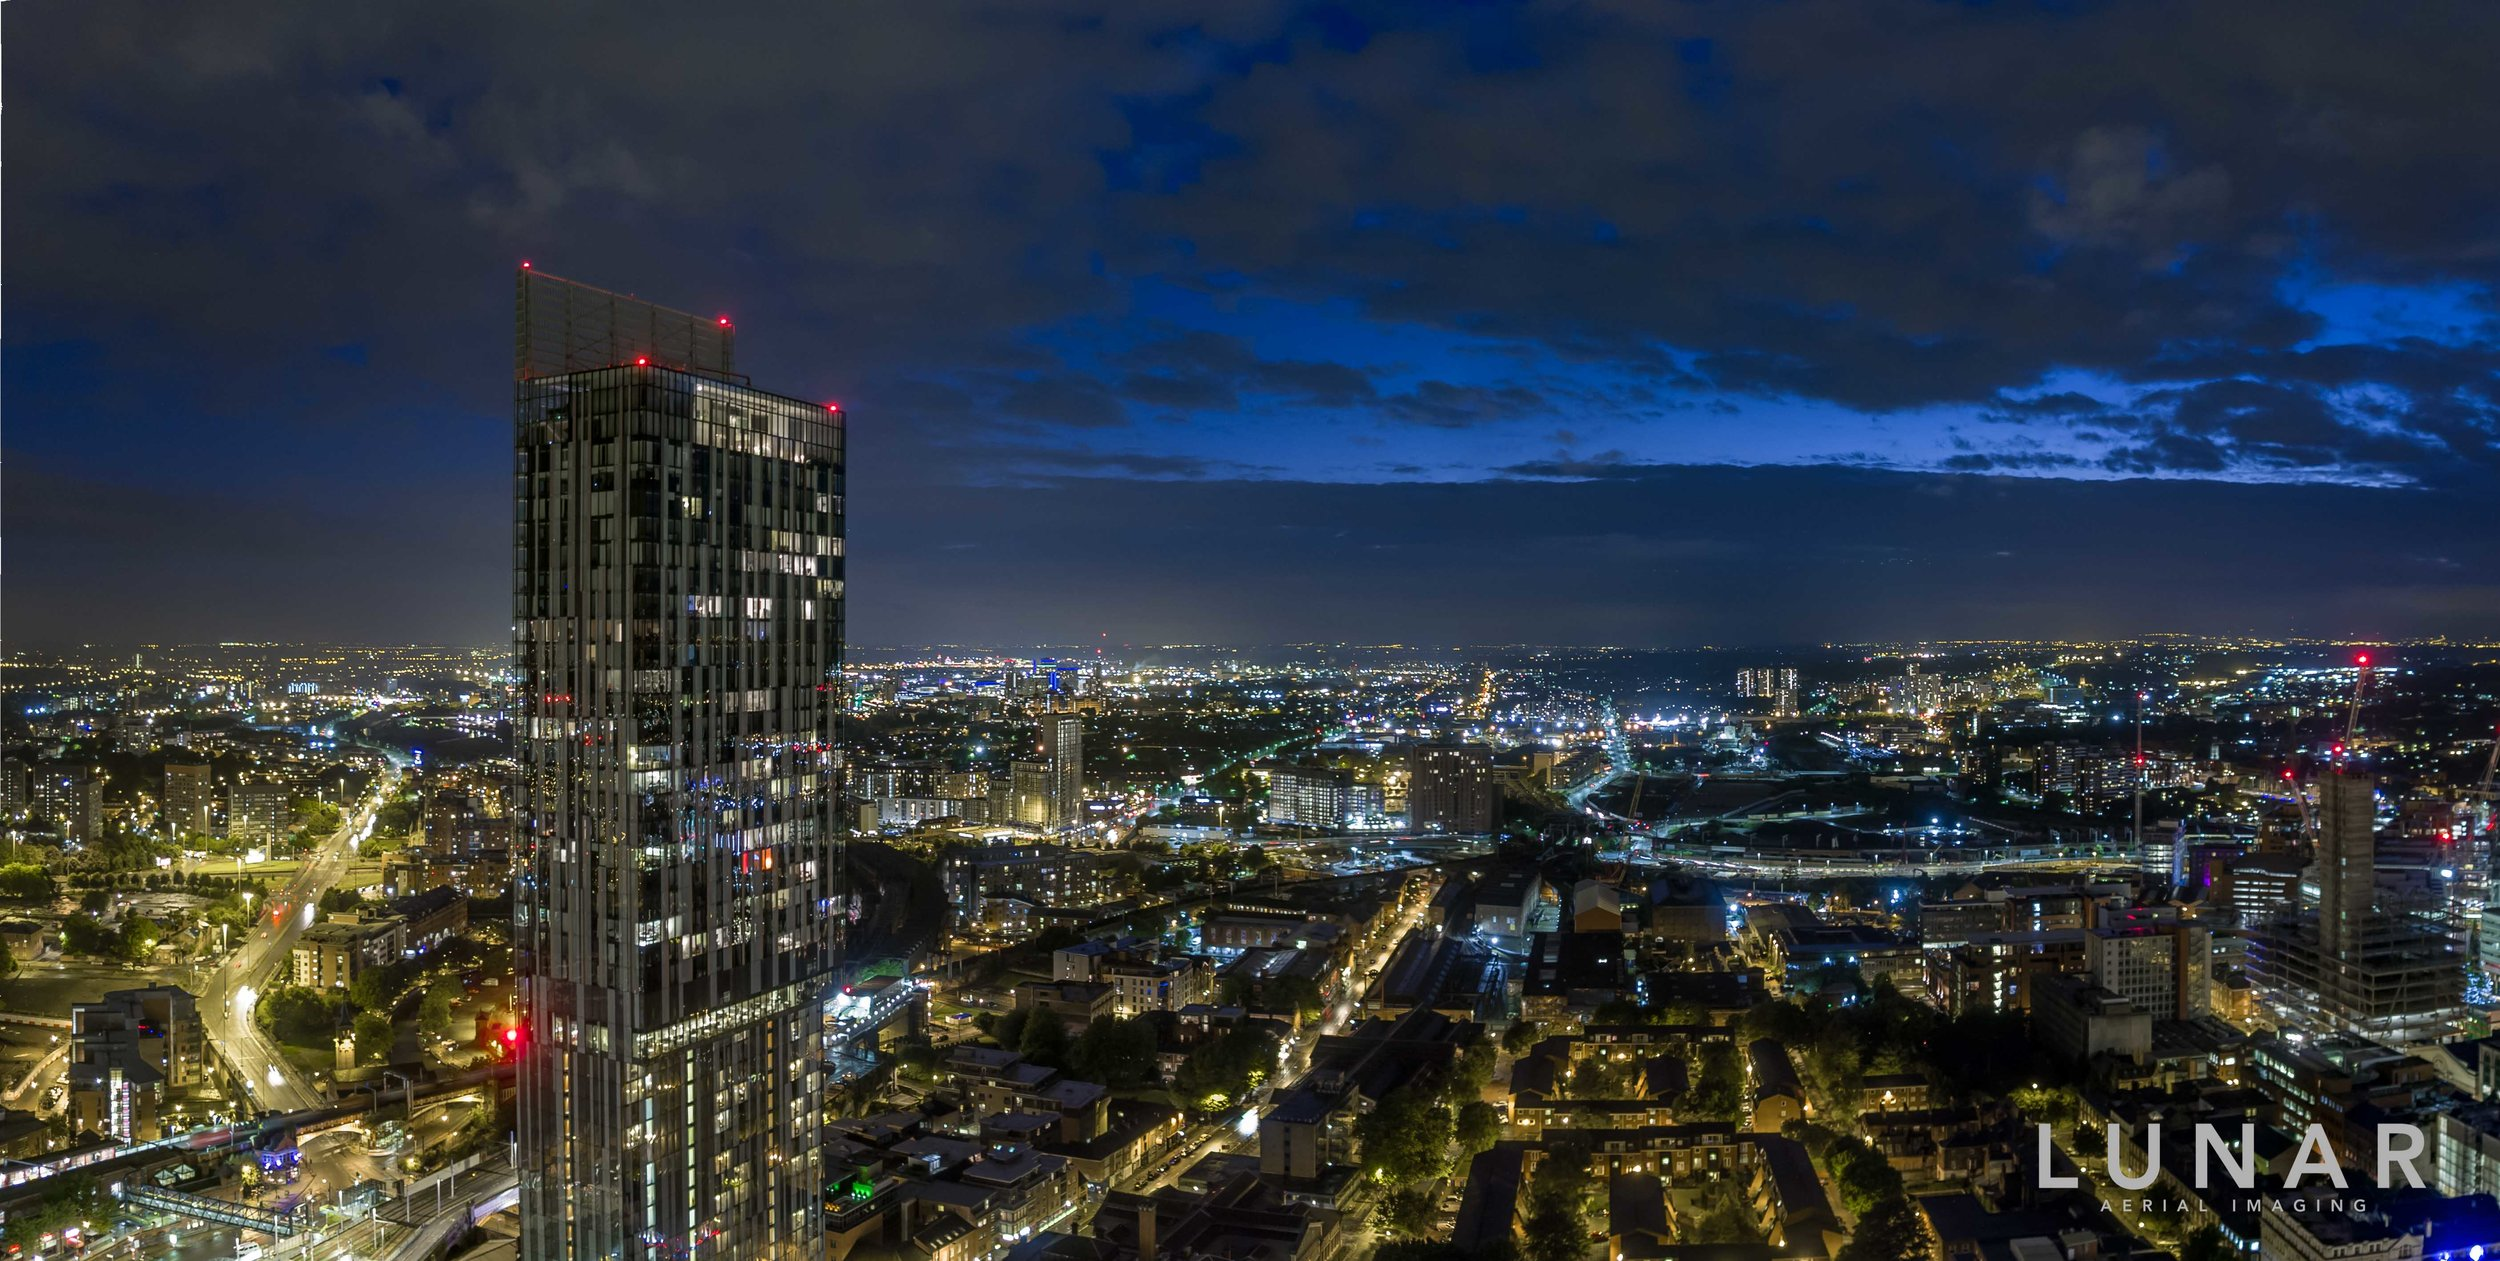 Night aerial cityscape of Manchester city centre